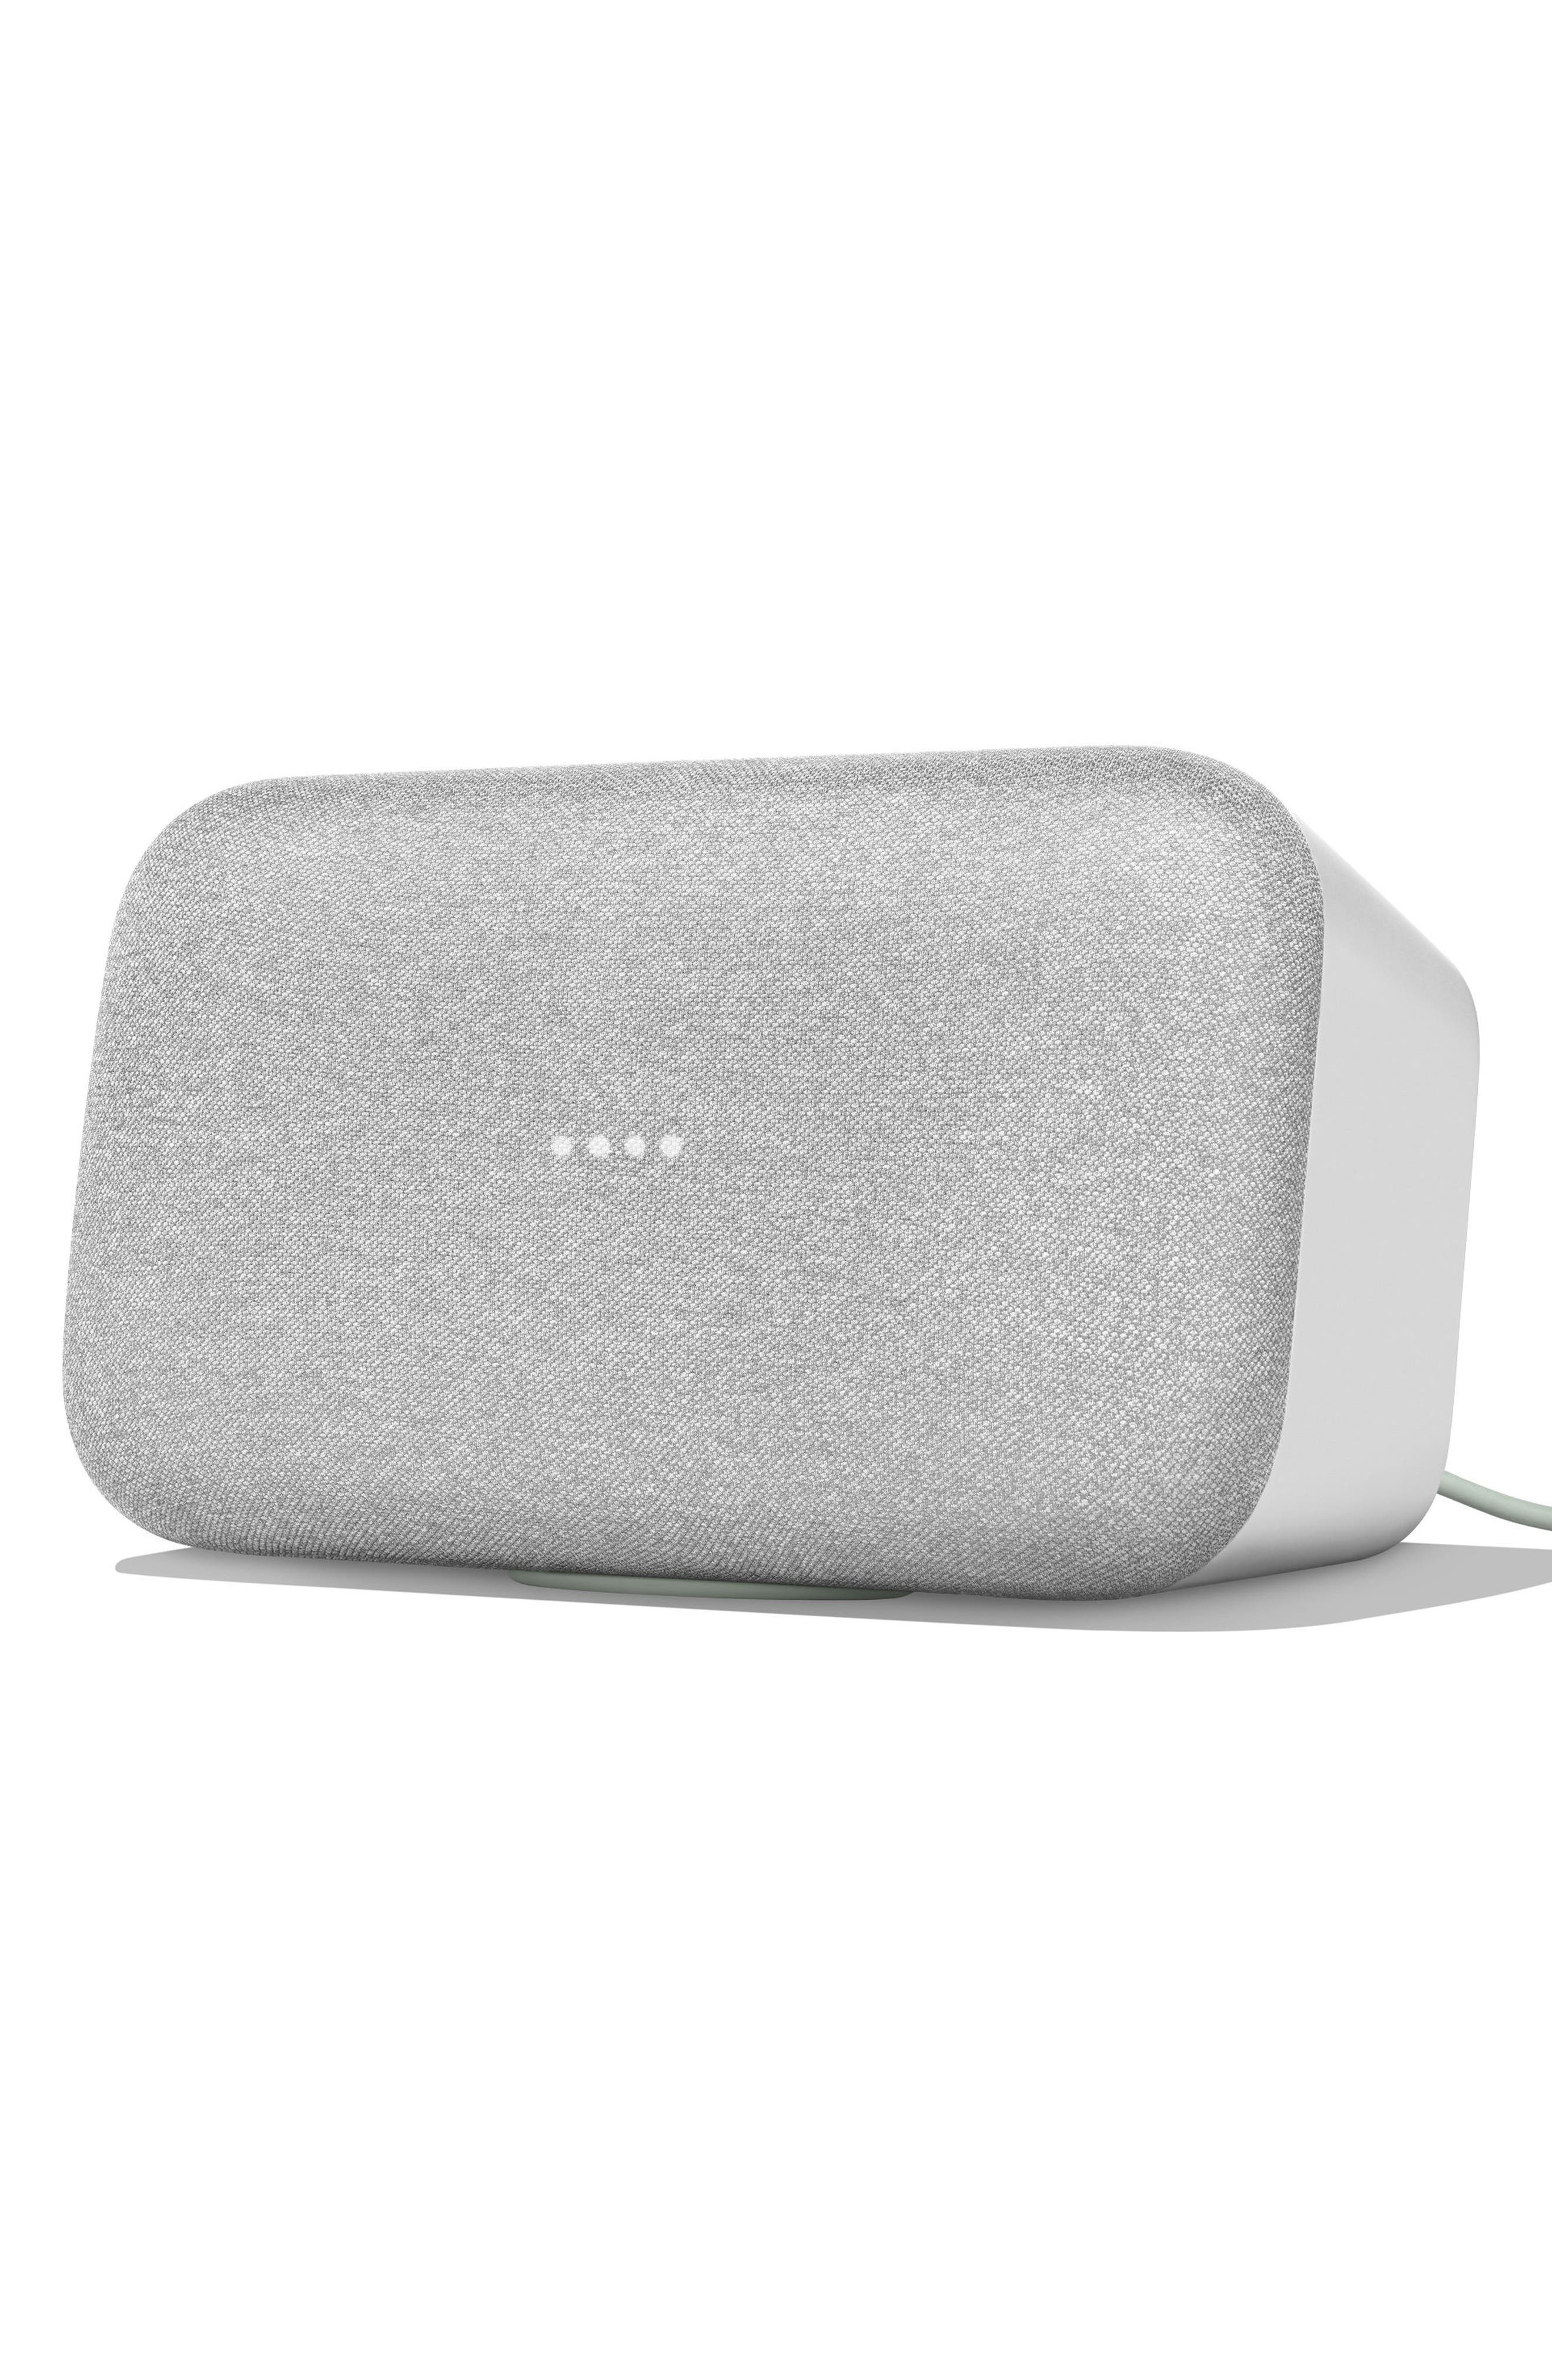 Home Max Wireless Speaker,                             Main thumbnail 1, color,                             Chalk